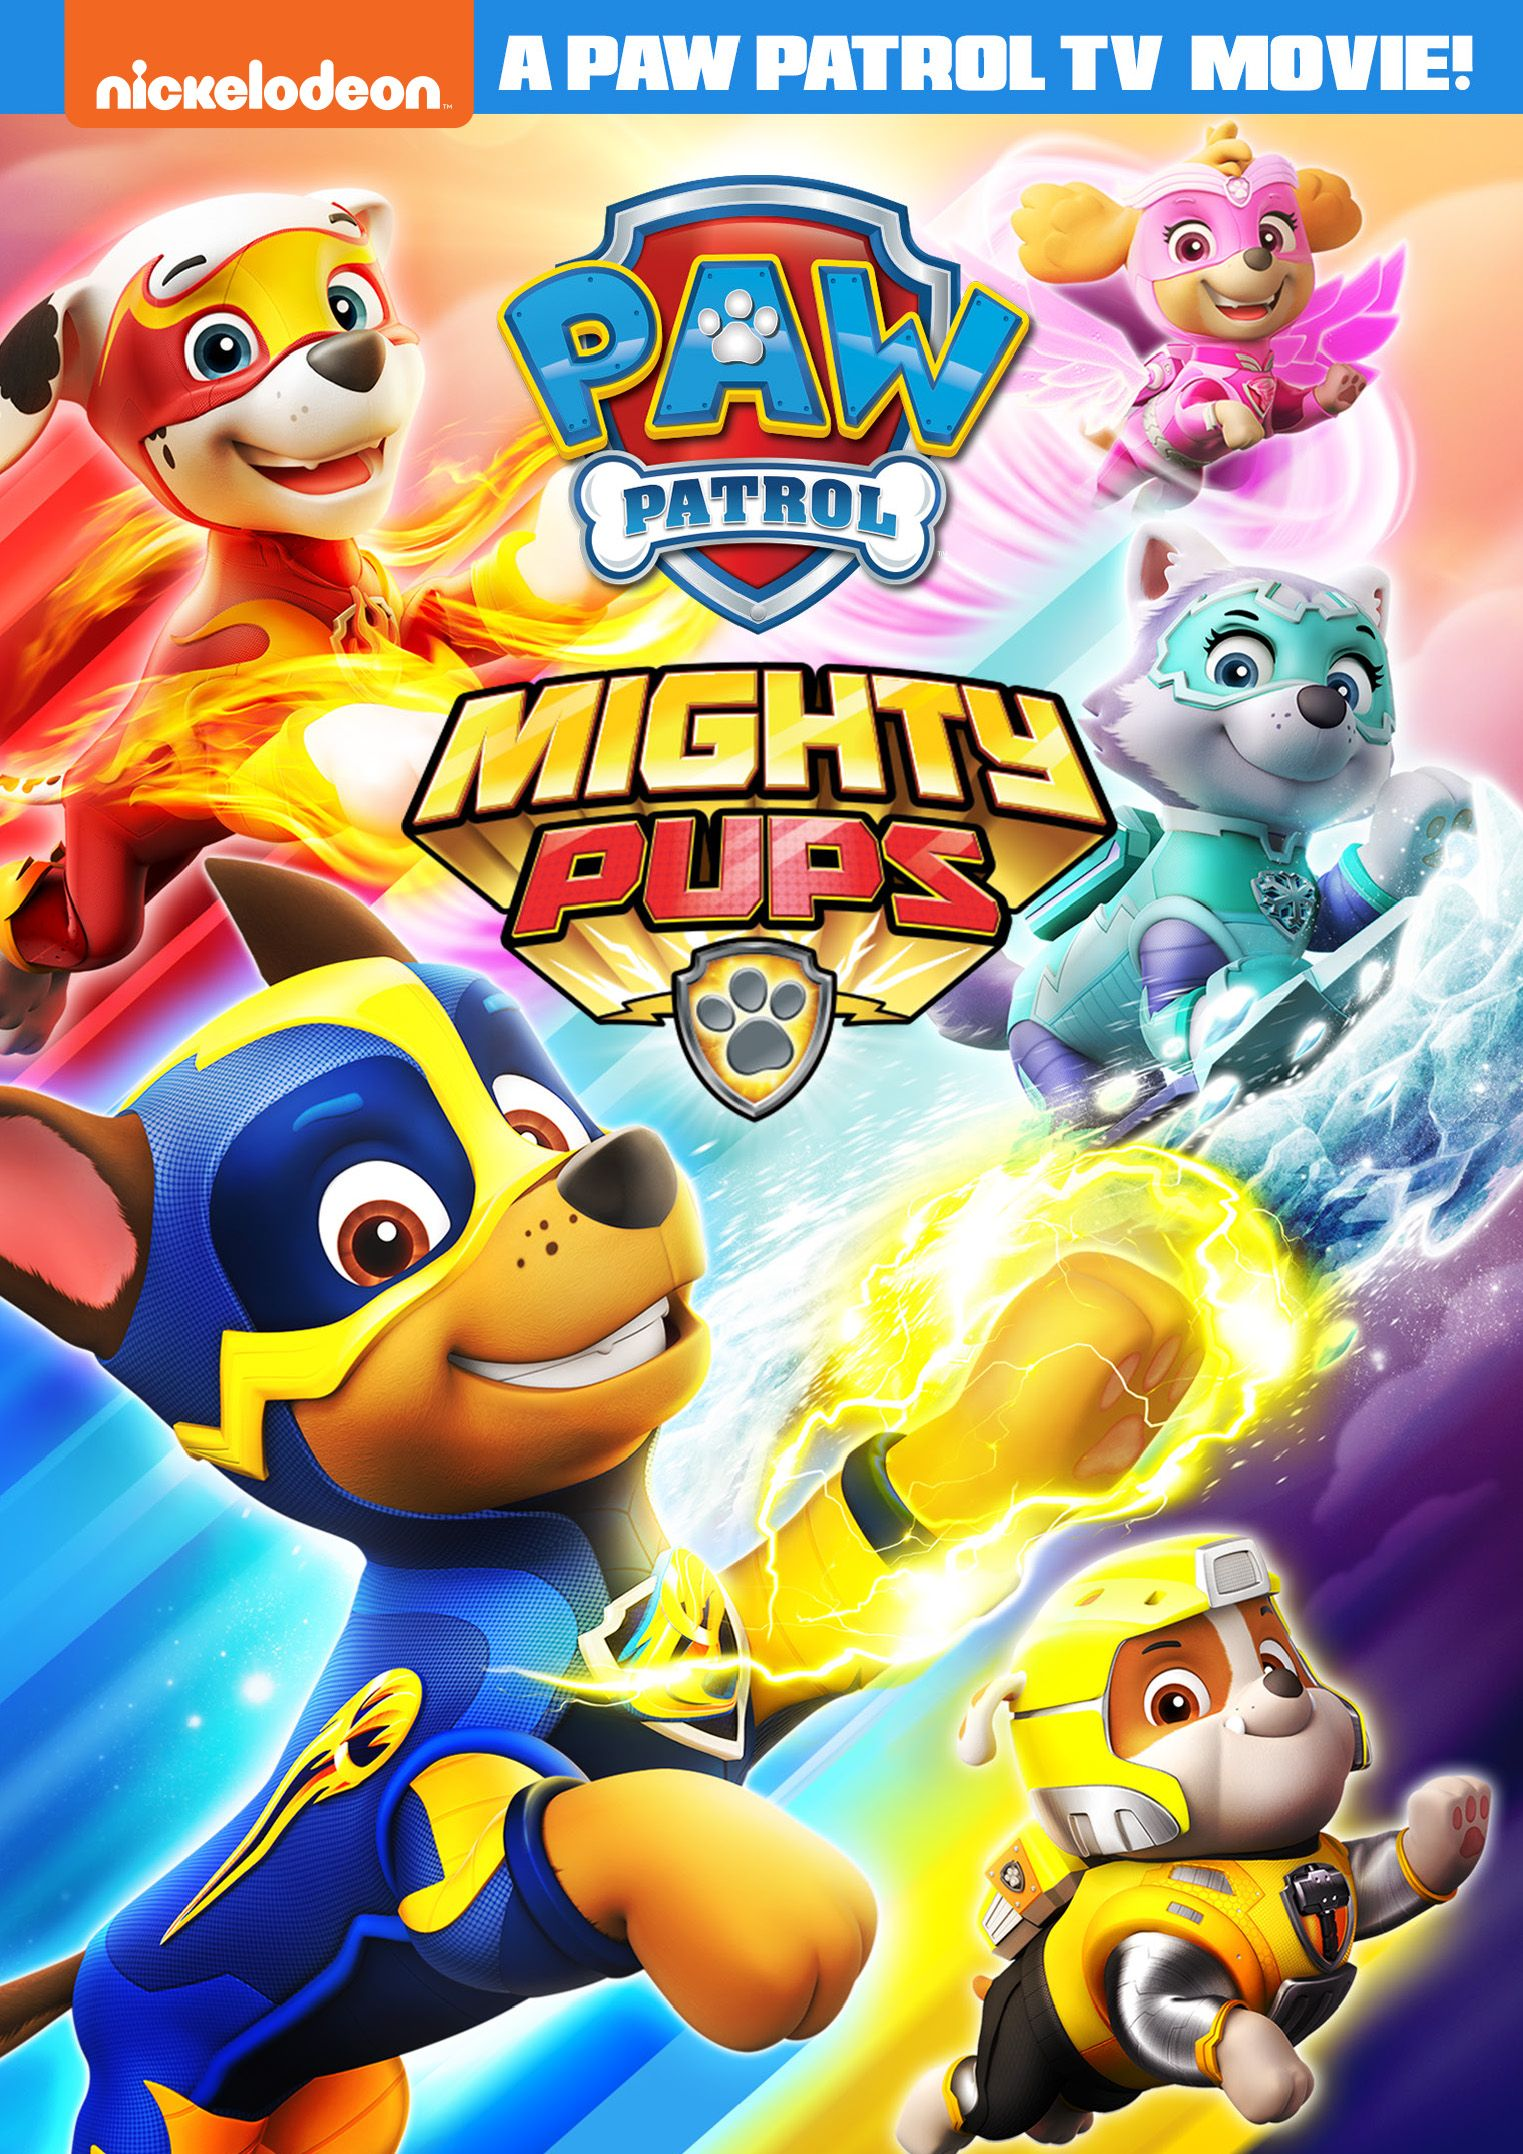 Quatang Gallery- Pin By Agustin Rocca On Productos In 2020 Paw Patrol Birthday Paw Patrol Birthday Party Paw Patrol